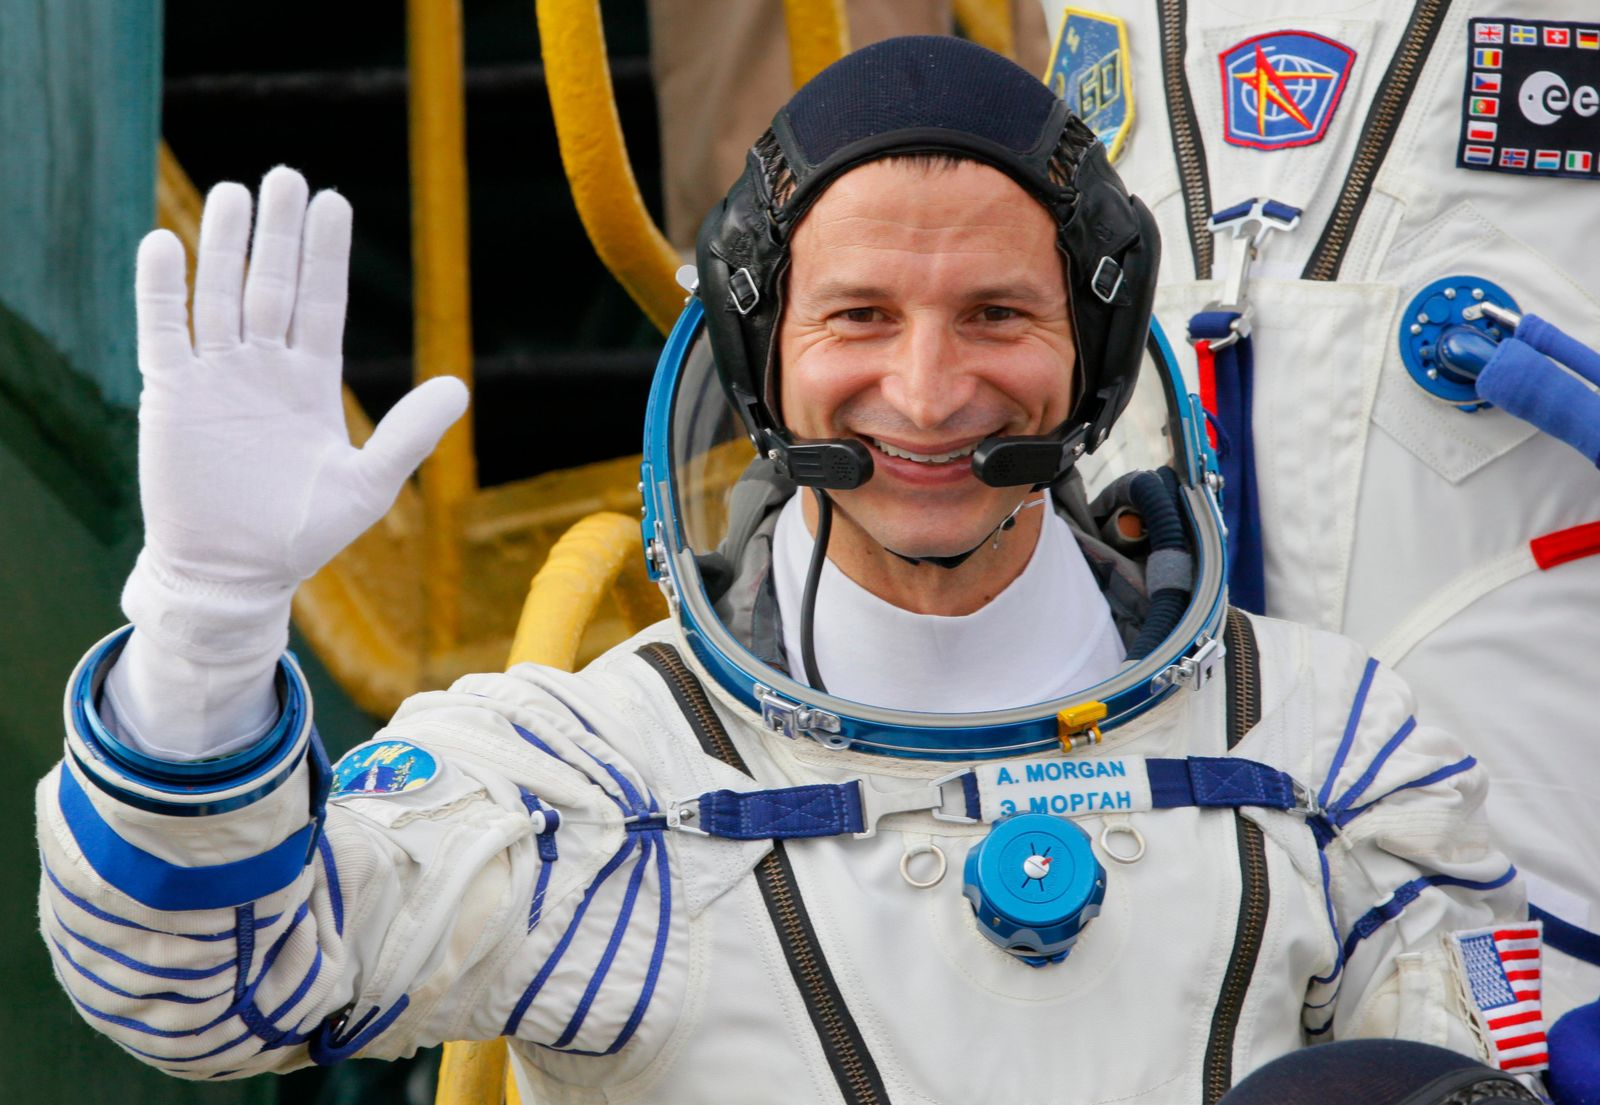 U.S. astronaut Andrew Morgan, crew member of the mission to the International Space Station, ISS, waves as he boards prior to the launch of Soyuz-FG rocket at the Russian leased Baikonur cosmodrome, Kazakhstan, Saturday, July 20, 2019. (AP Photo/Dmitri Lovetsky, Pool)